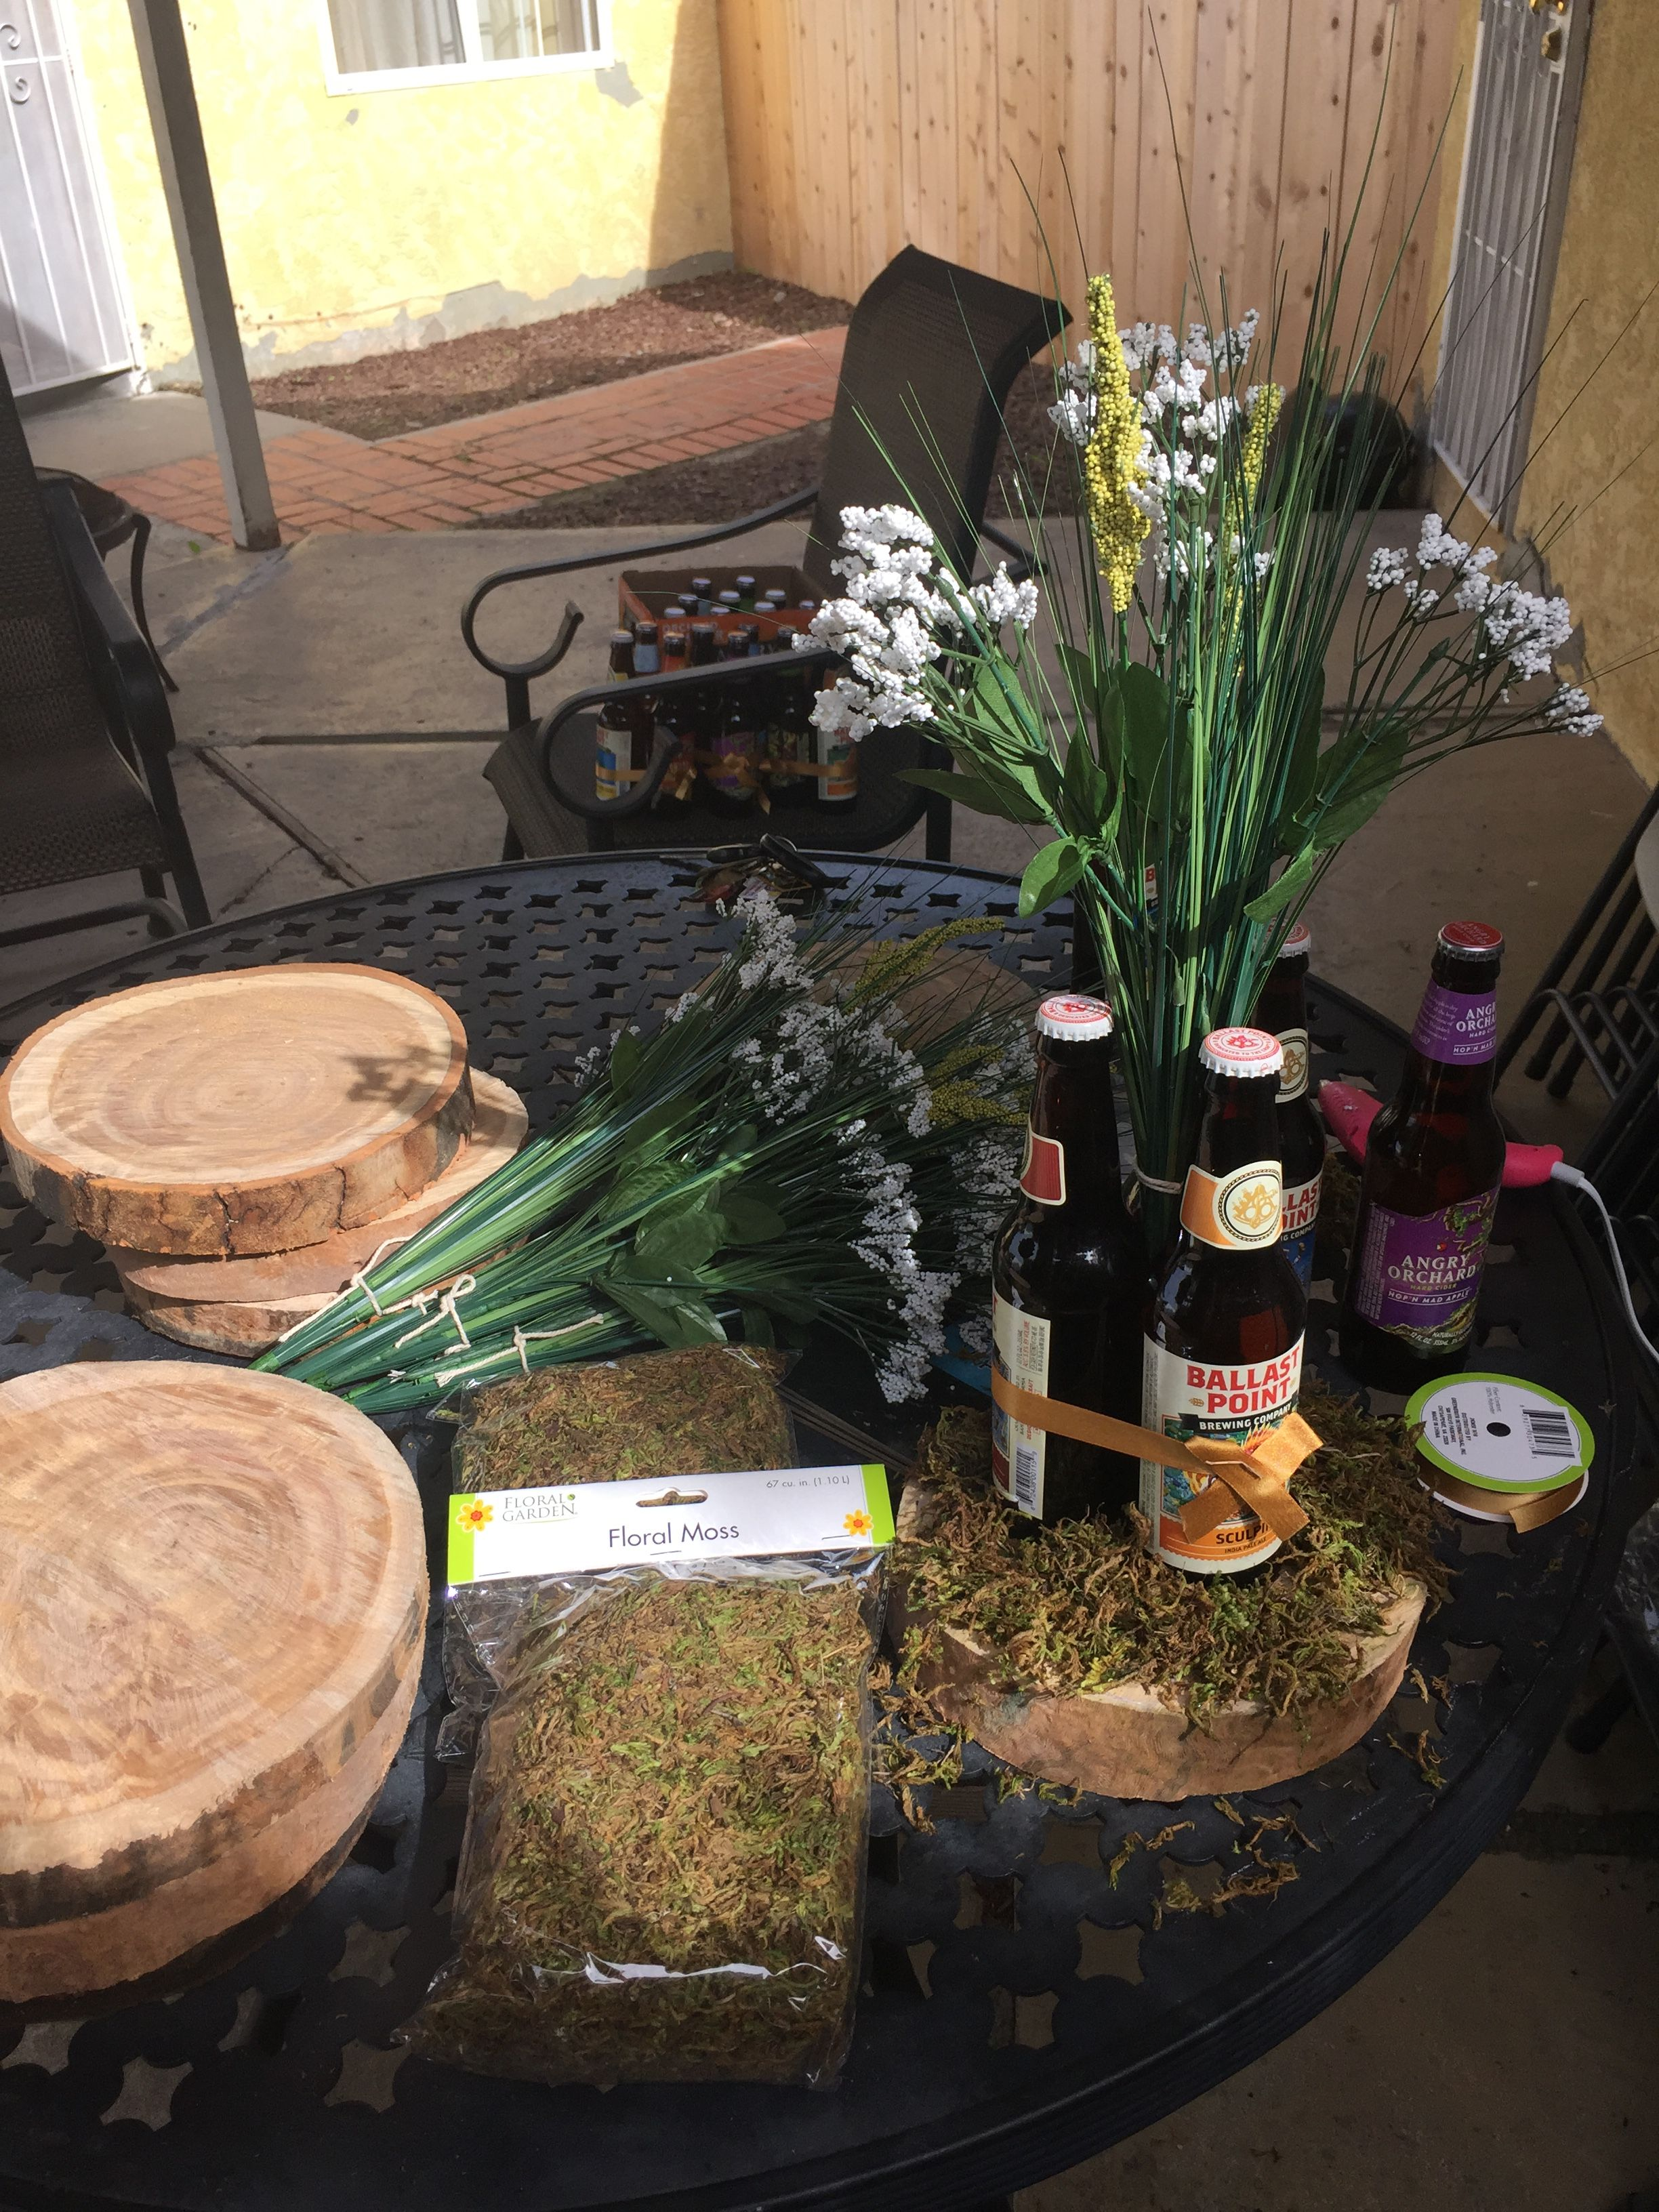 Awesome Beer Themed Party Centerpieces Are Fabulous For A Manly Download Free Architecture Designs Ogrambritishbridgeorg